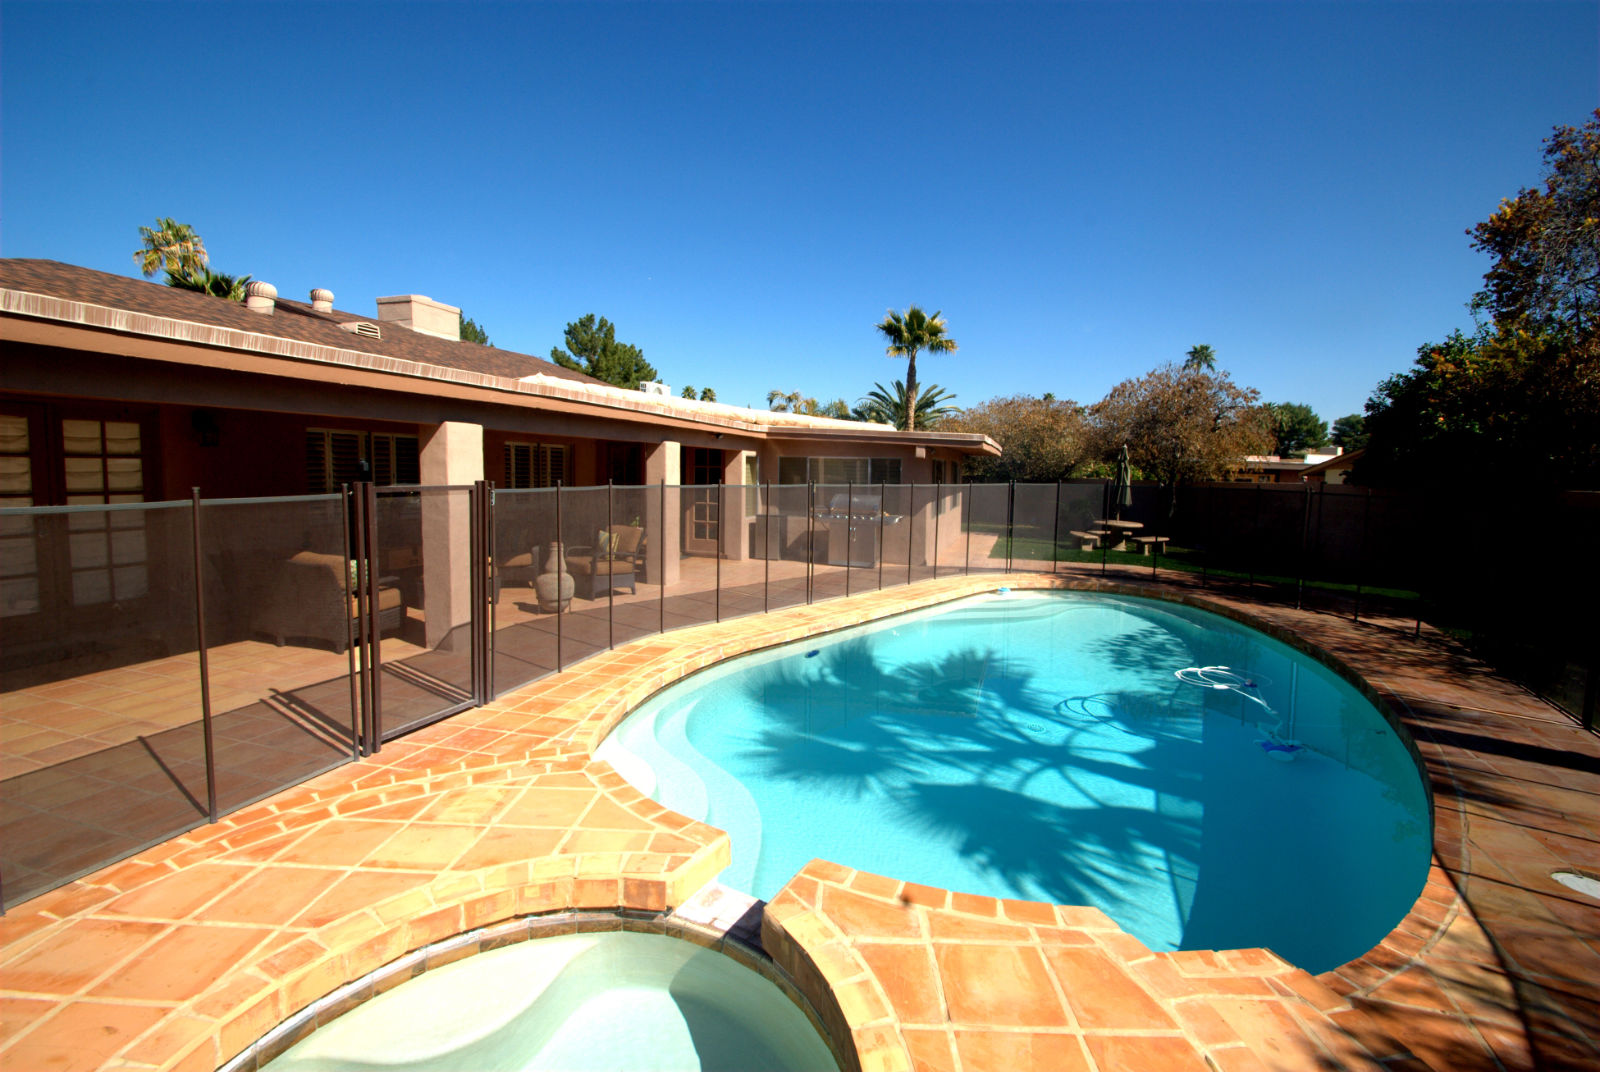 mccormick ranch homes | The Scottsdale Property Shop